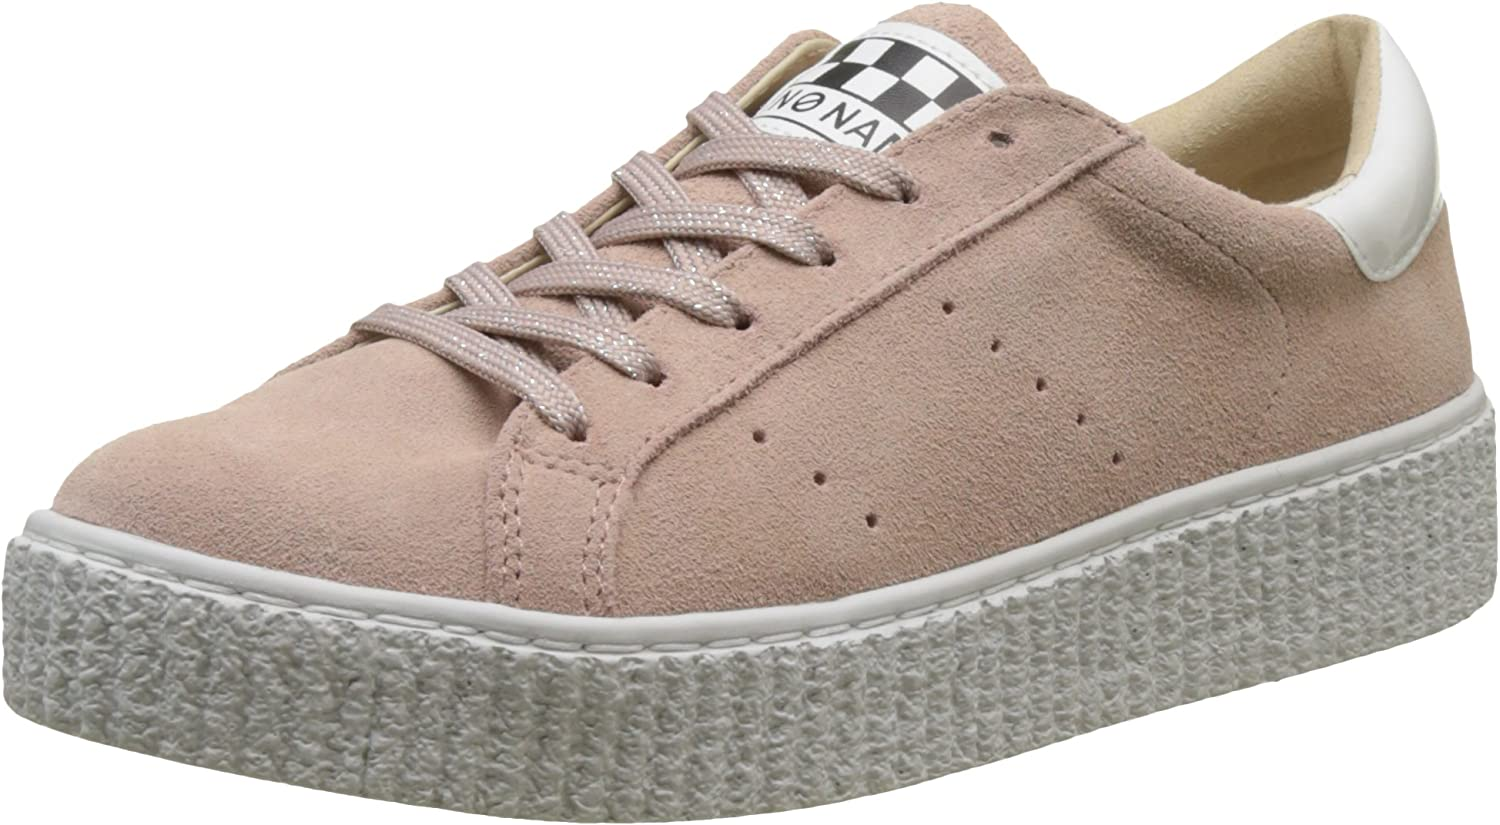 Picadilly Sneaker Suede, Women's Low